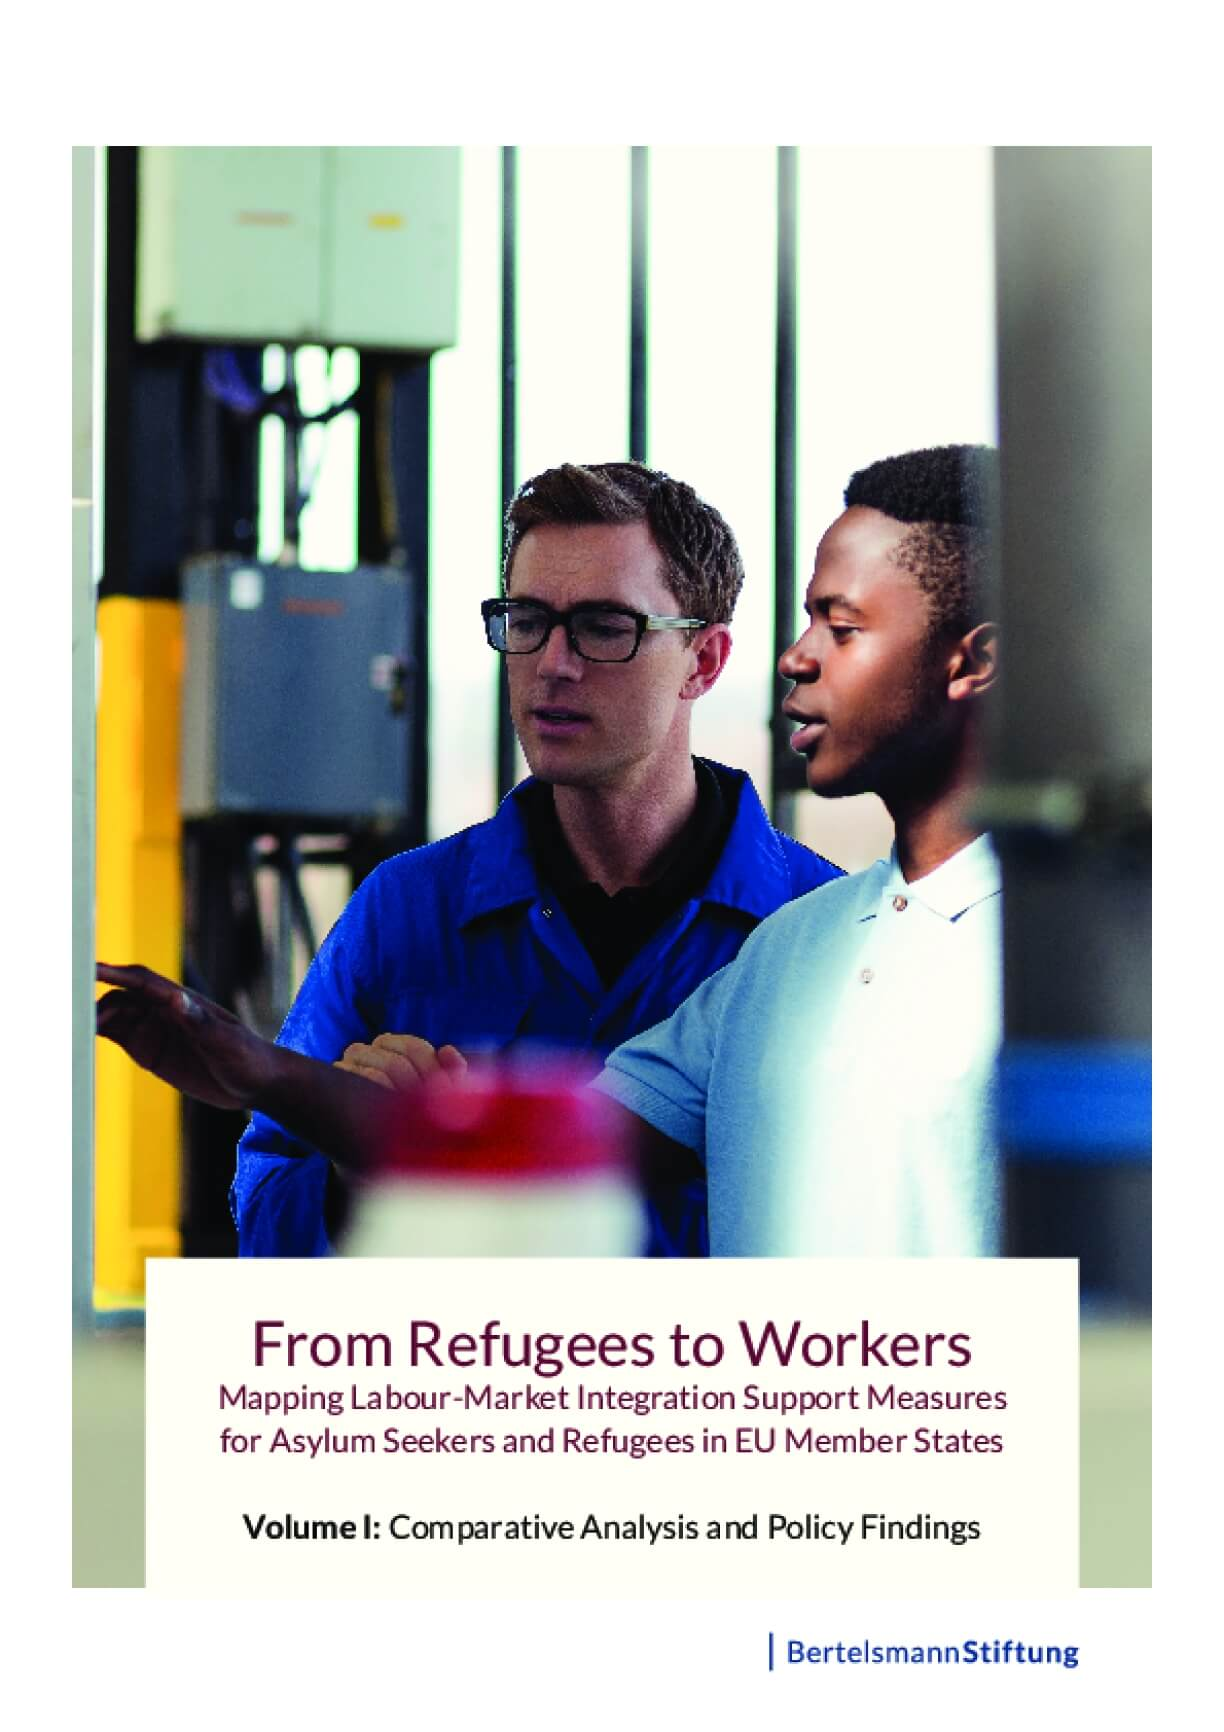 From Refugees to Workers : Mapping Labour-Market Integration Support Measures for Asylum Seekers and Refugees in Eu Member States - Volume I: Comparative Analysis and Policy Findings